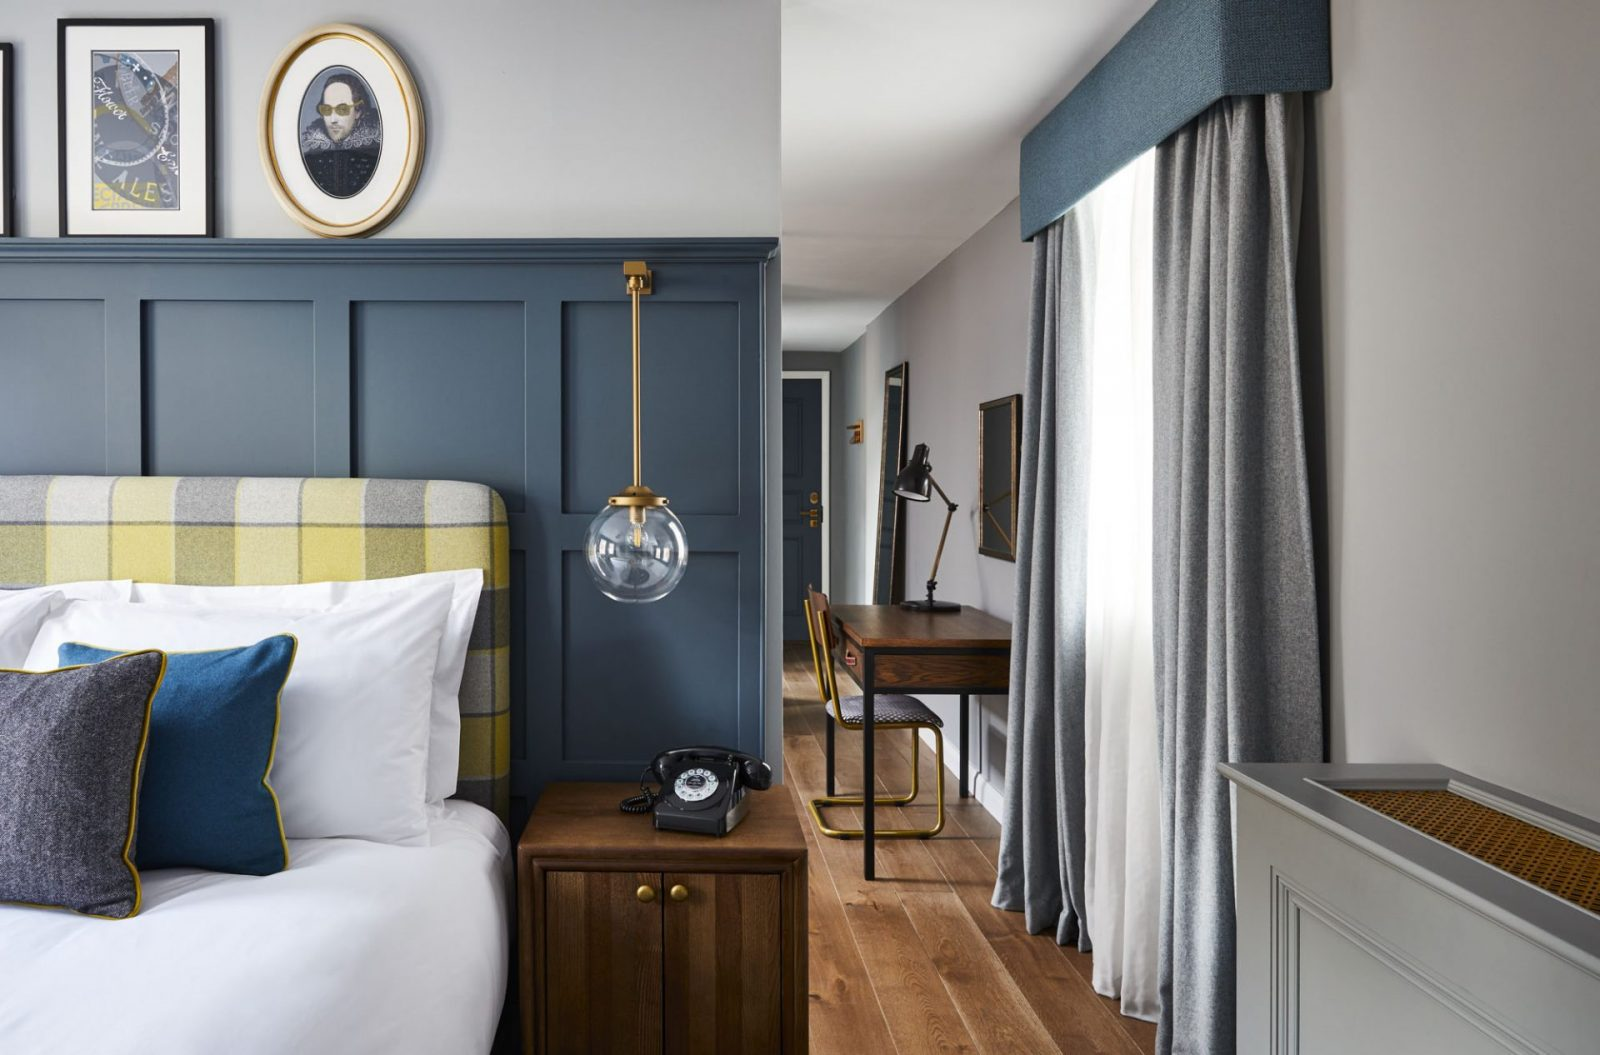 The Falcon Hotel, Stratford-Upon-Avon by Darling Associates